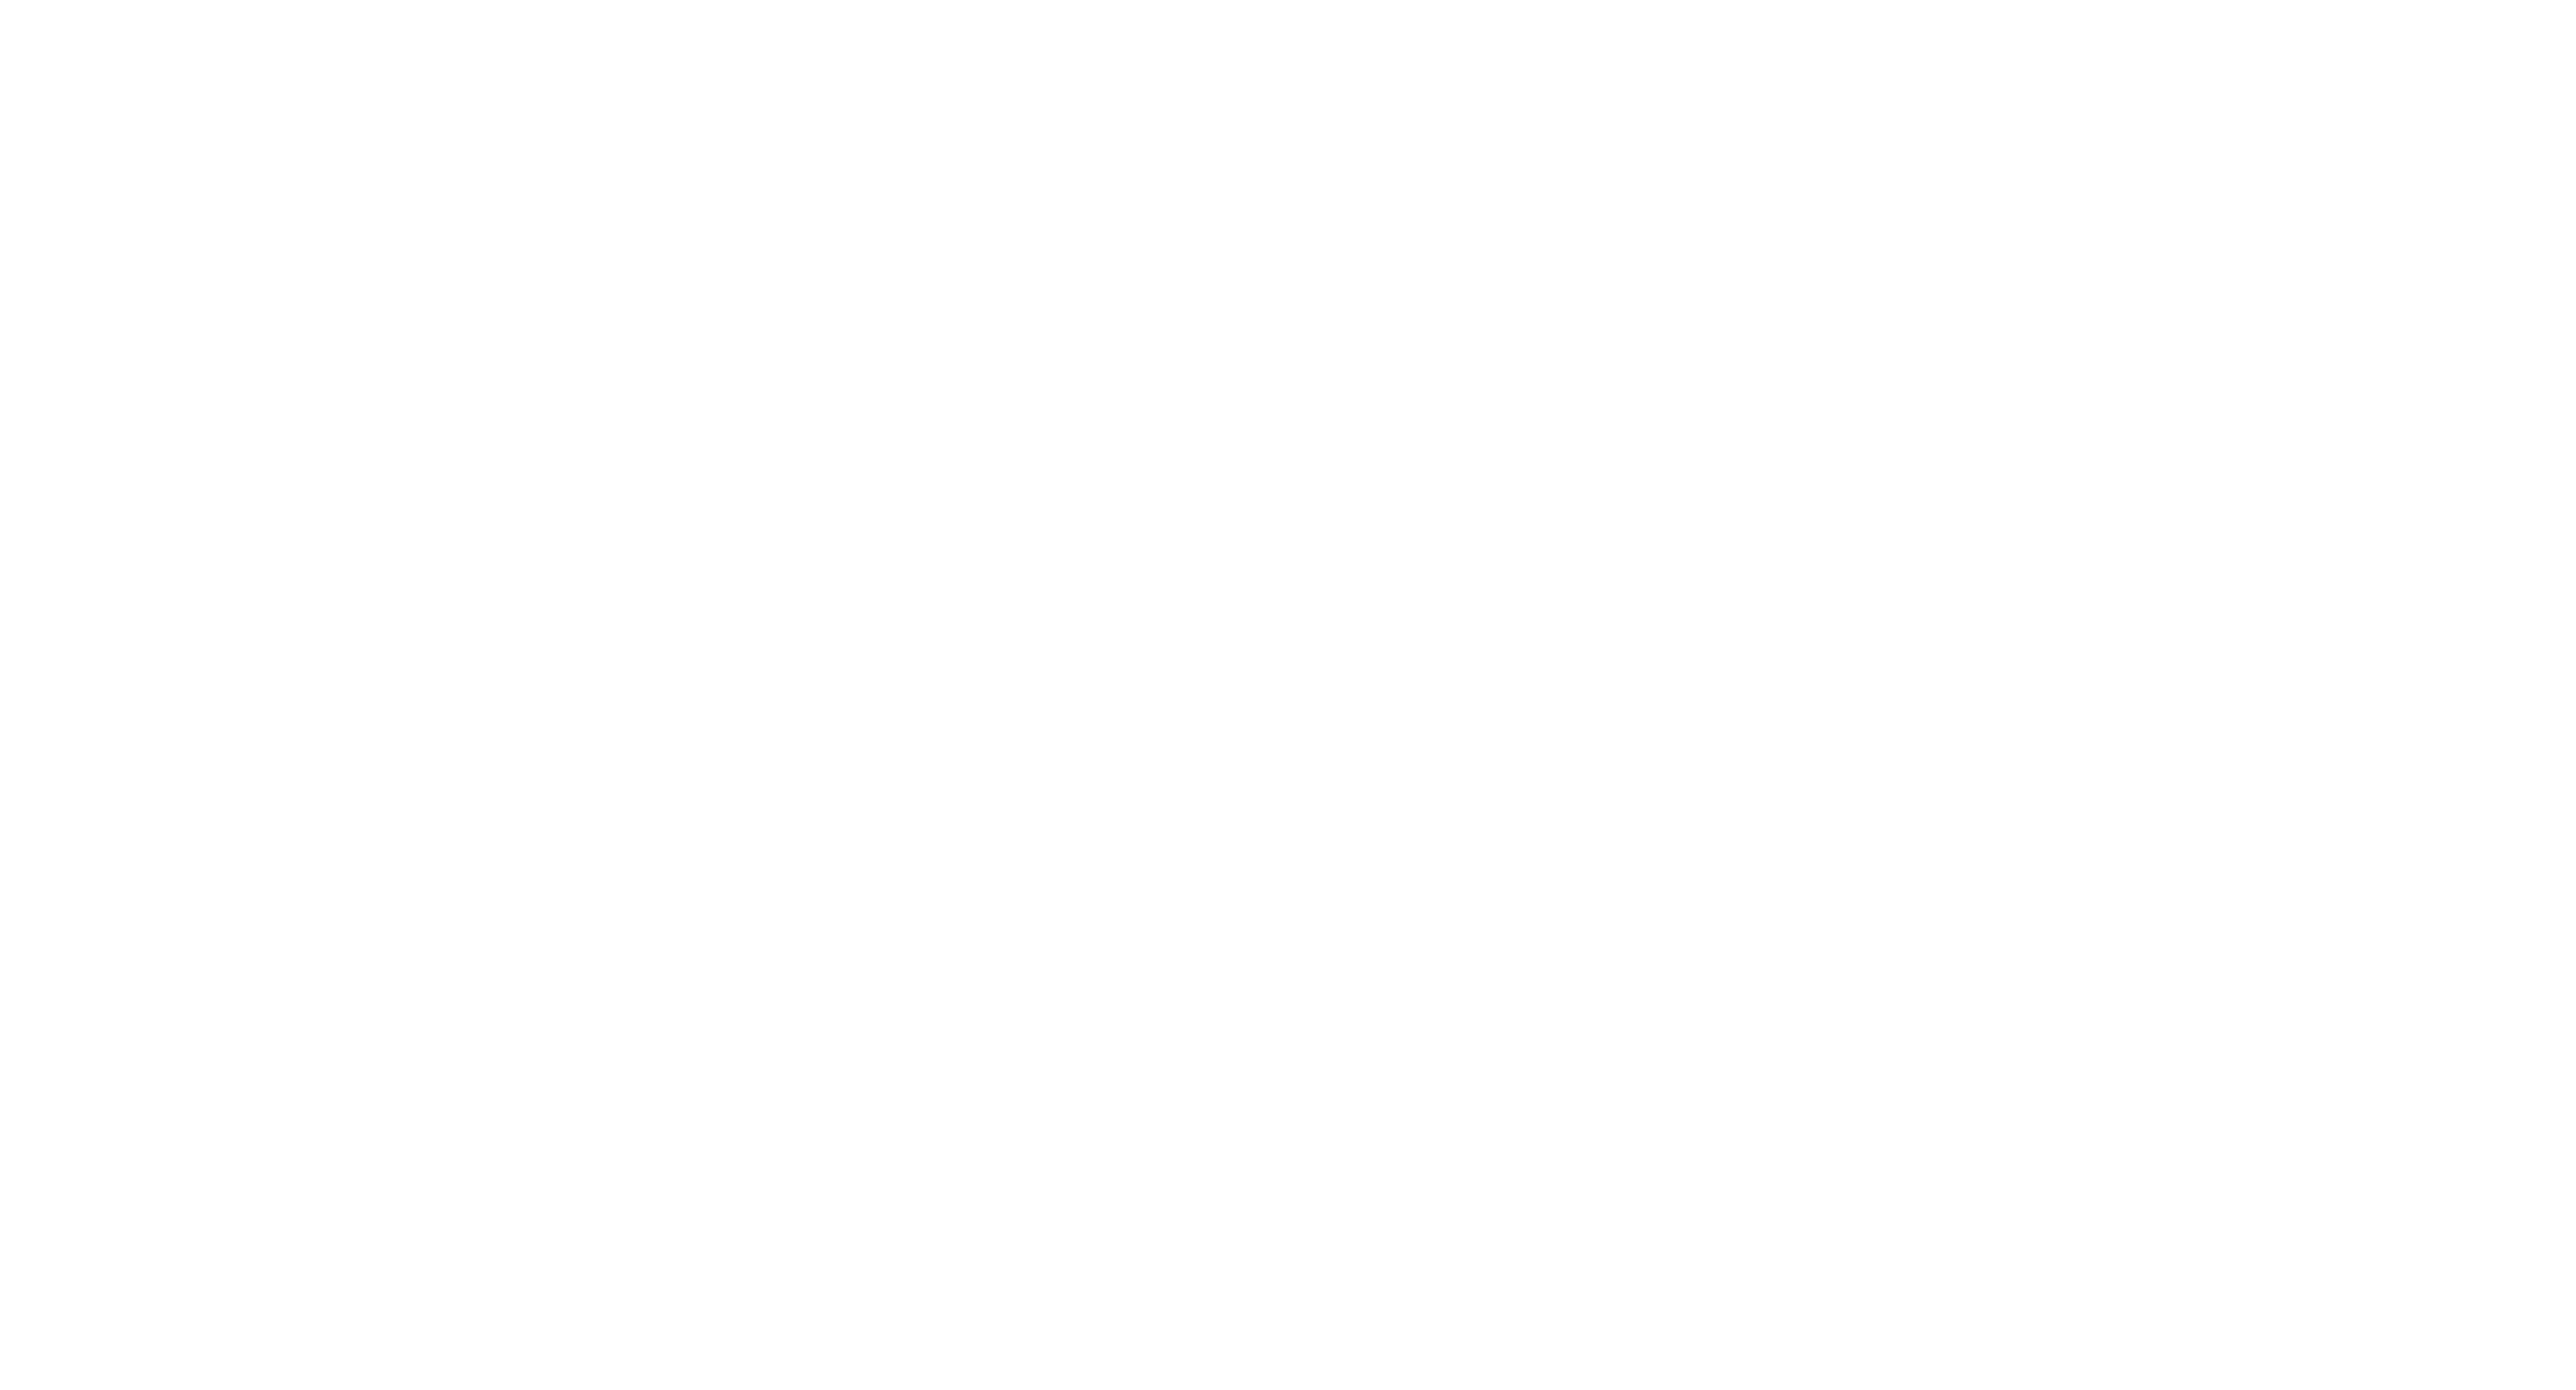 Tower Hamlets Liberal Democrats